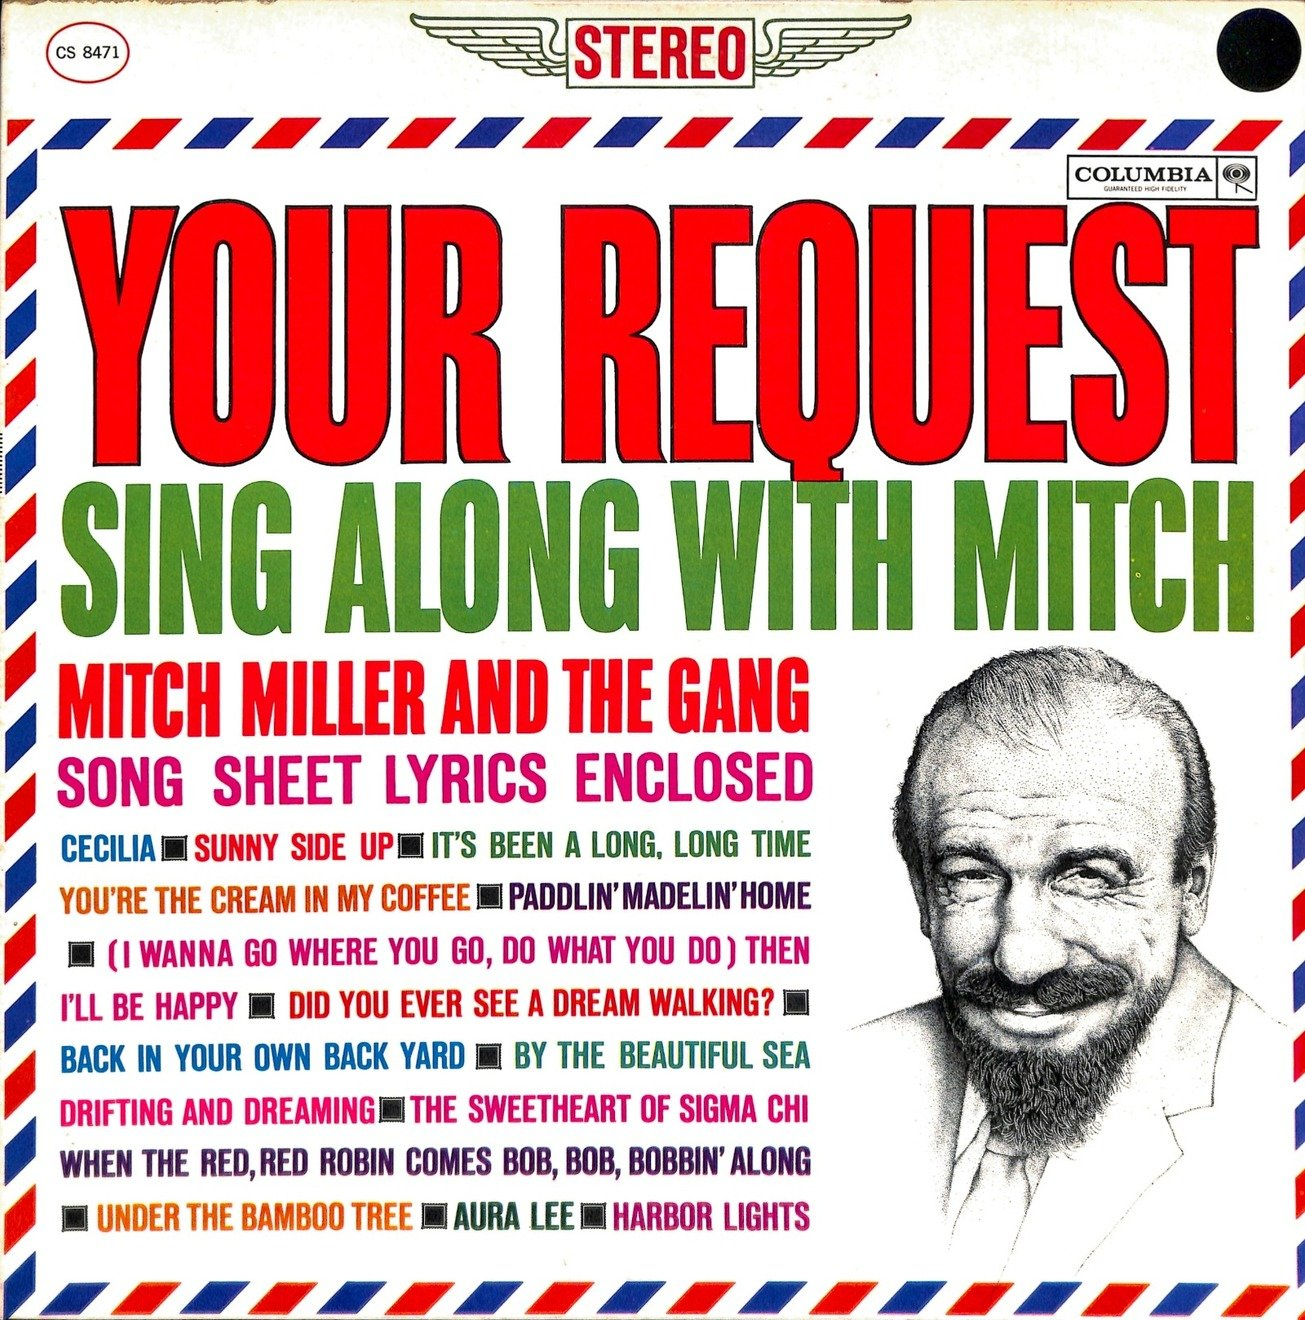 Mitch miller your request  28cs 8471 29